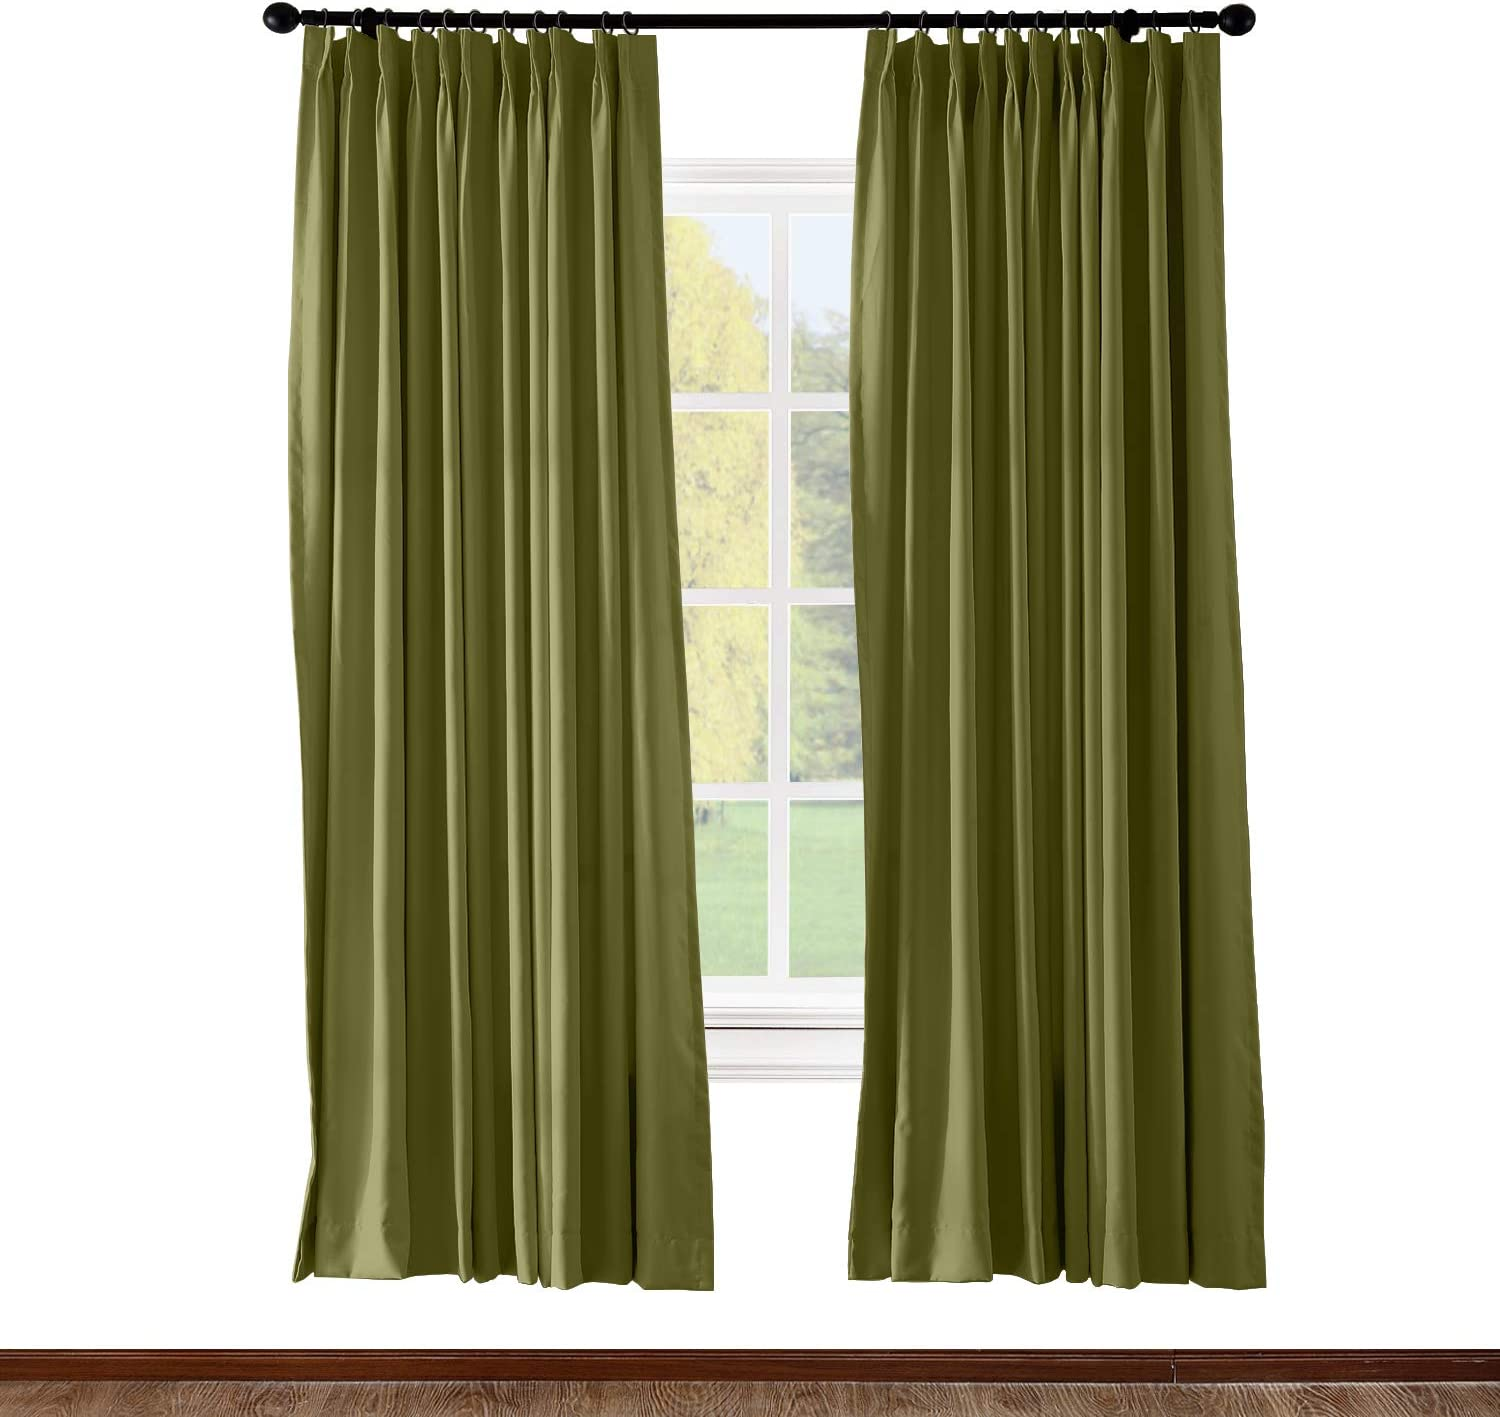 ChadMade Pinch Pleated Curtain 100W x 84L Inch Solid Thermal Insulated Blackout Patio Door Panel Drape for Traverse Rod and Track, Green (1 Panel)